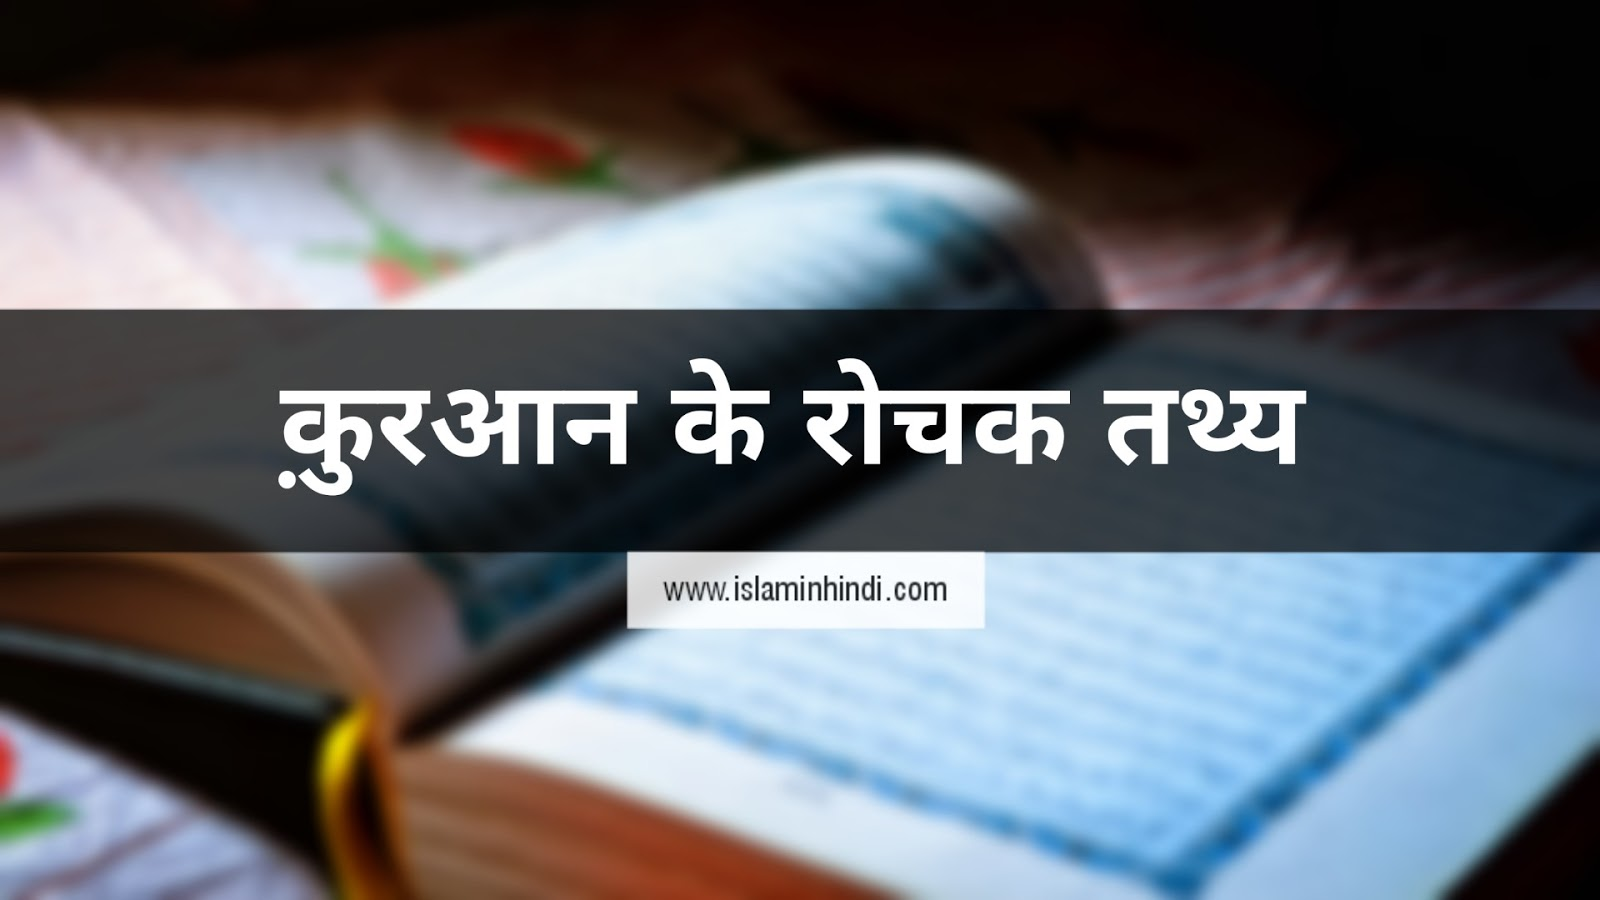 Quran fact in hindi urdu